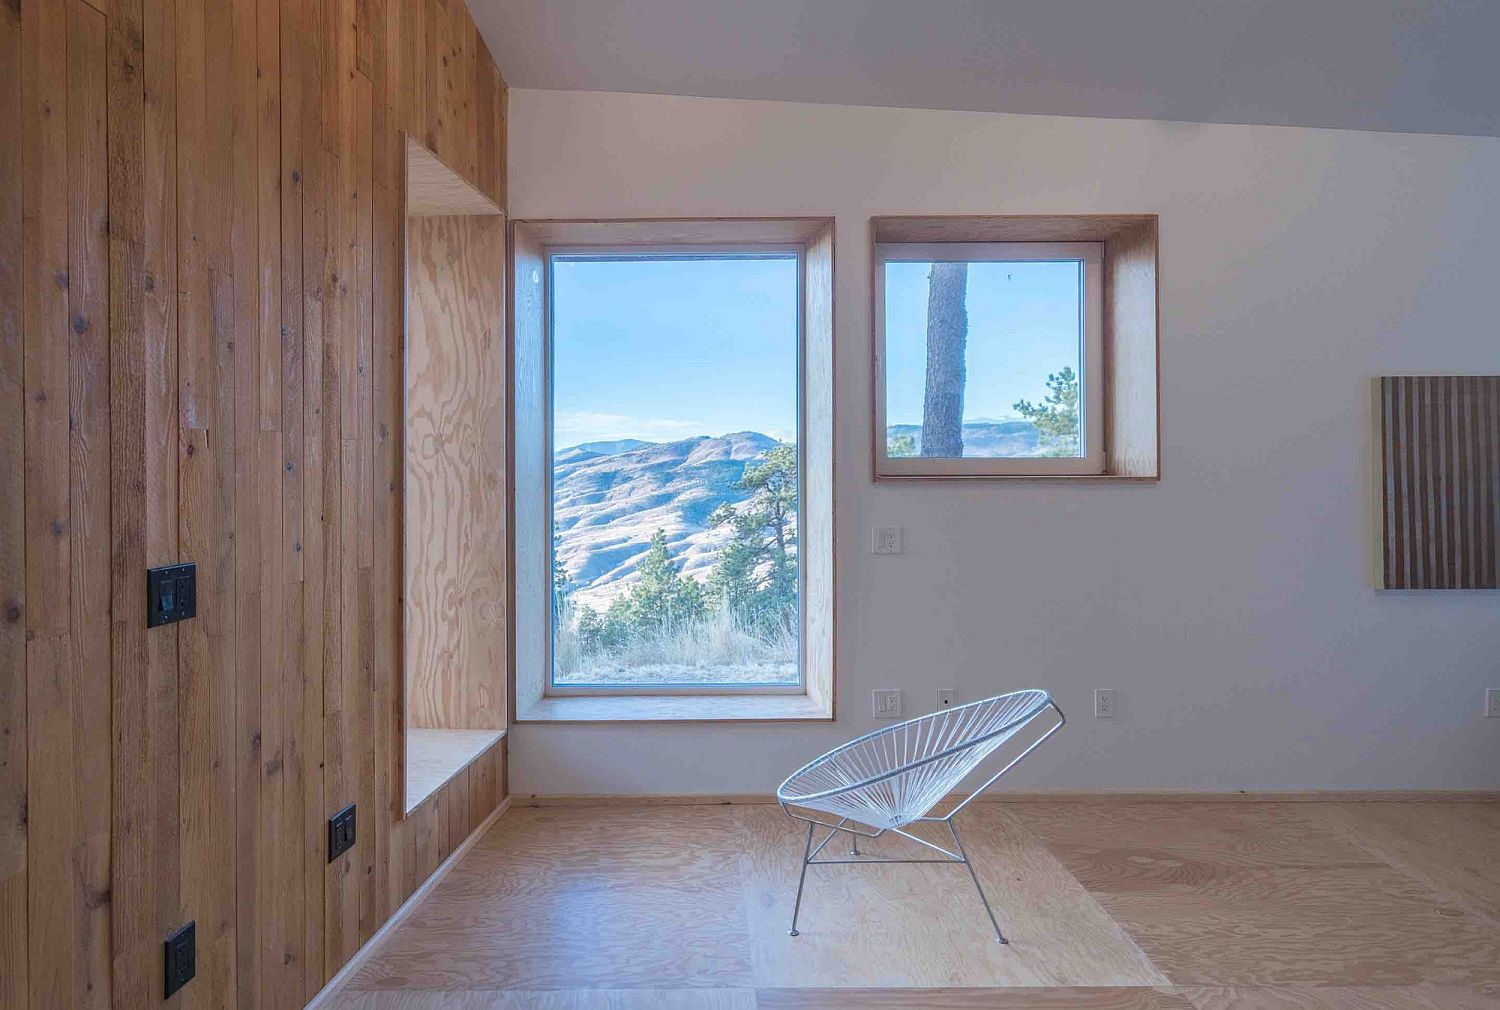 Top-notch-insulation-and-great-views-combined-at-the-MARTaK-Passive-House